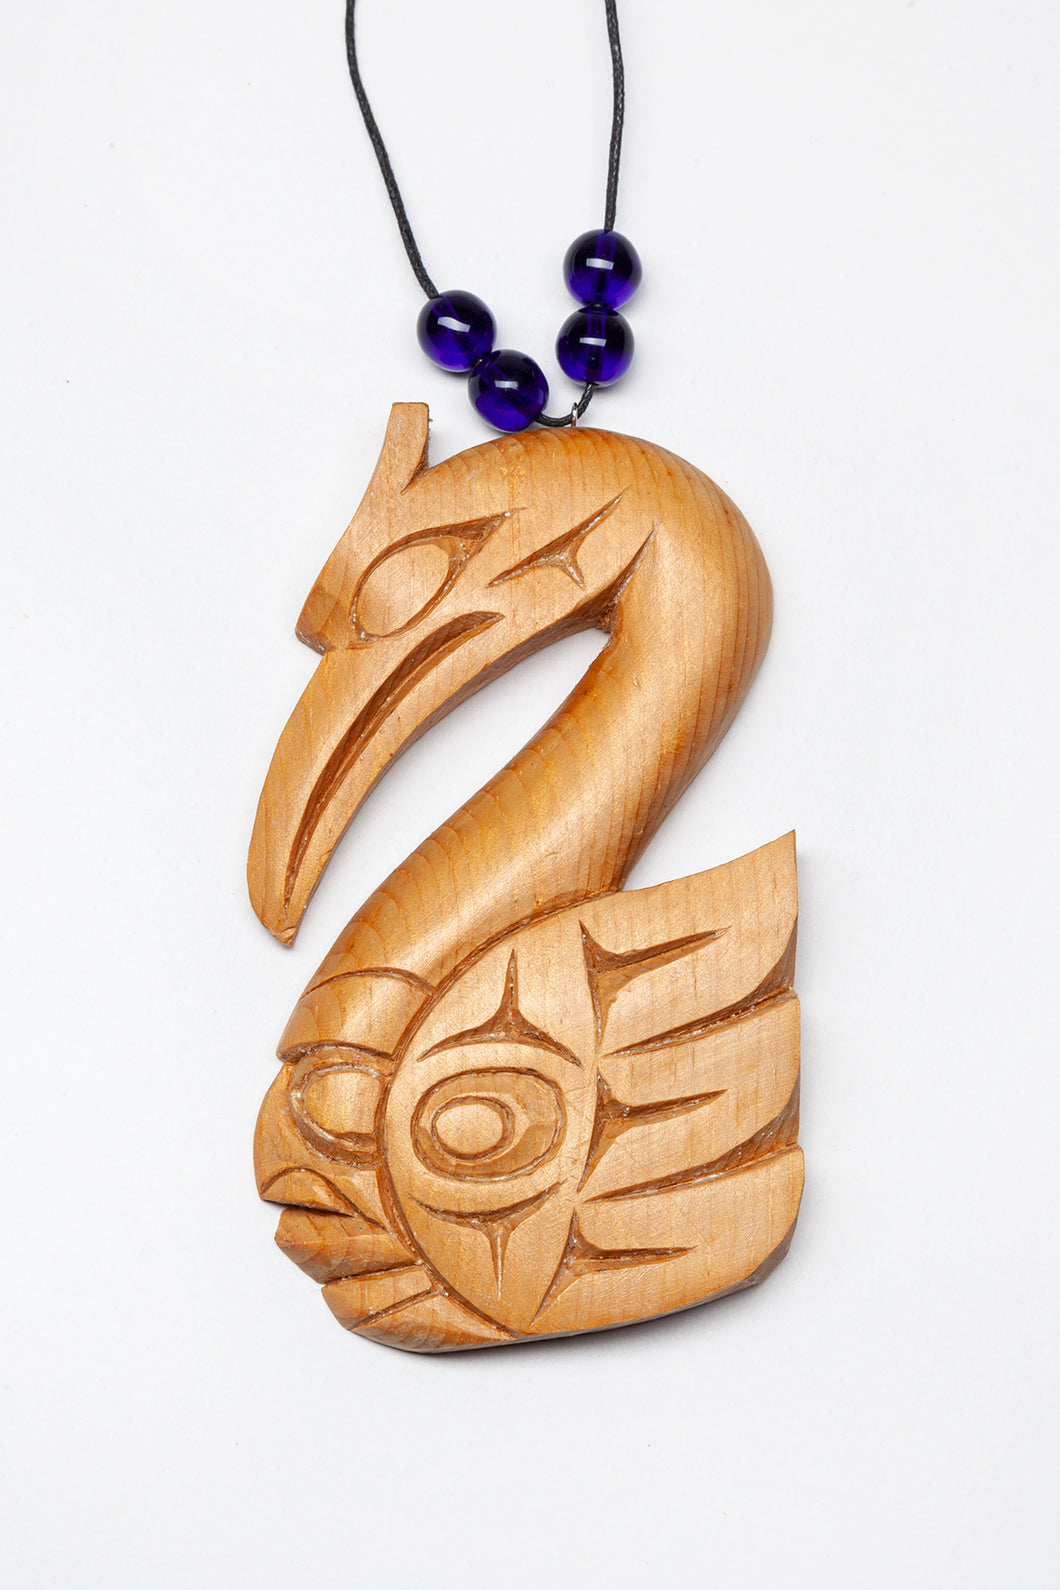 Northwest Coast Swan Pendant by Doug Horne, Coast Salish Nation